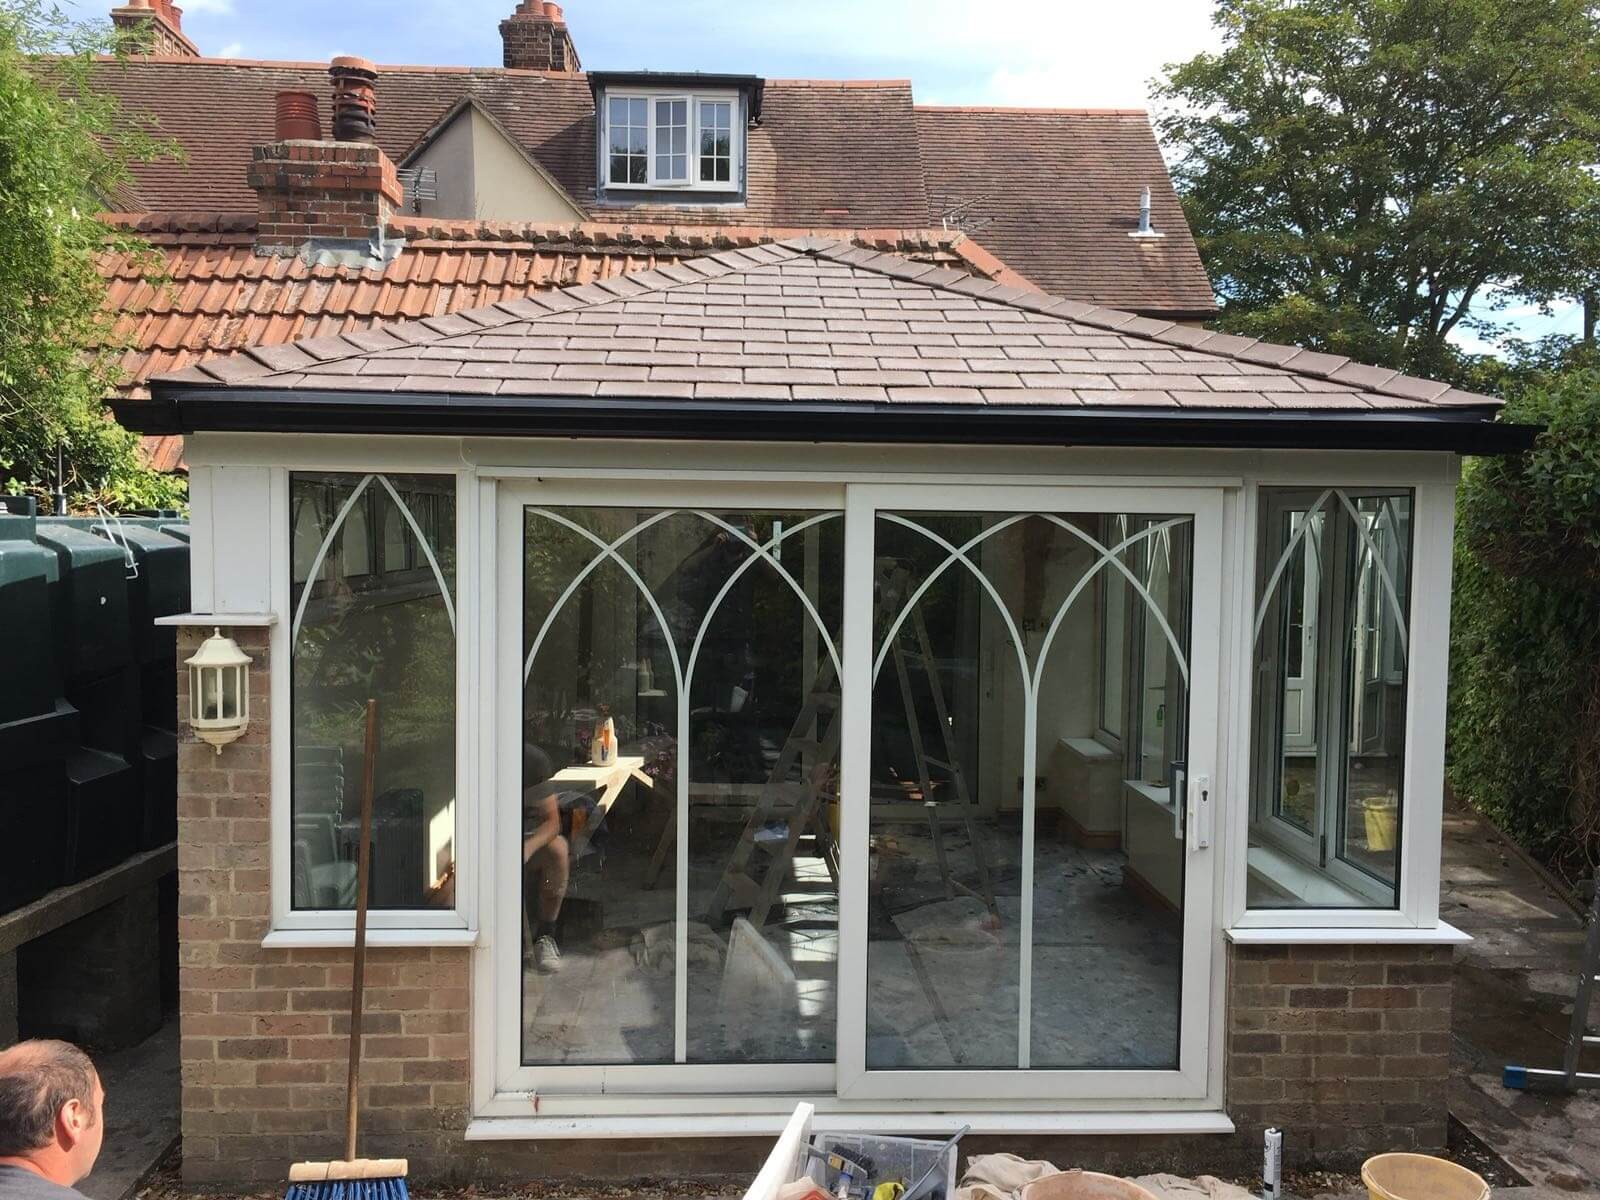 Conservatory_Roof_Replacement_Cambridge (1)